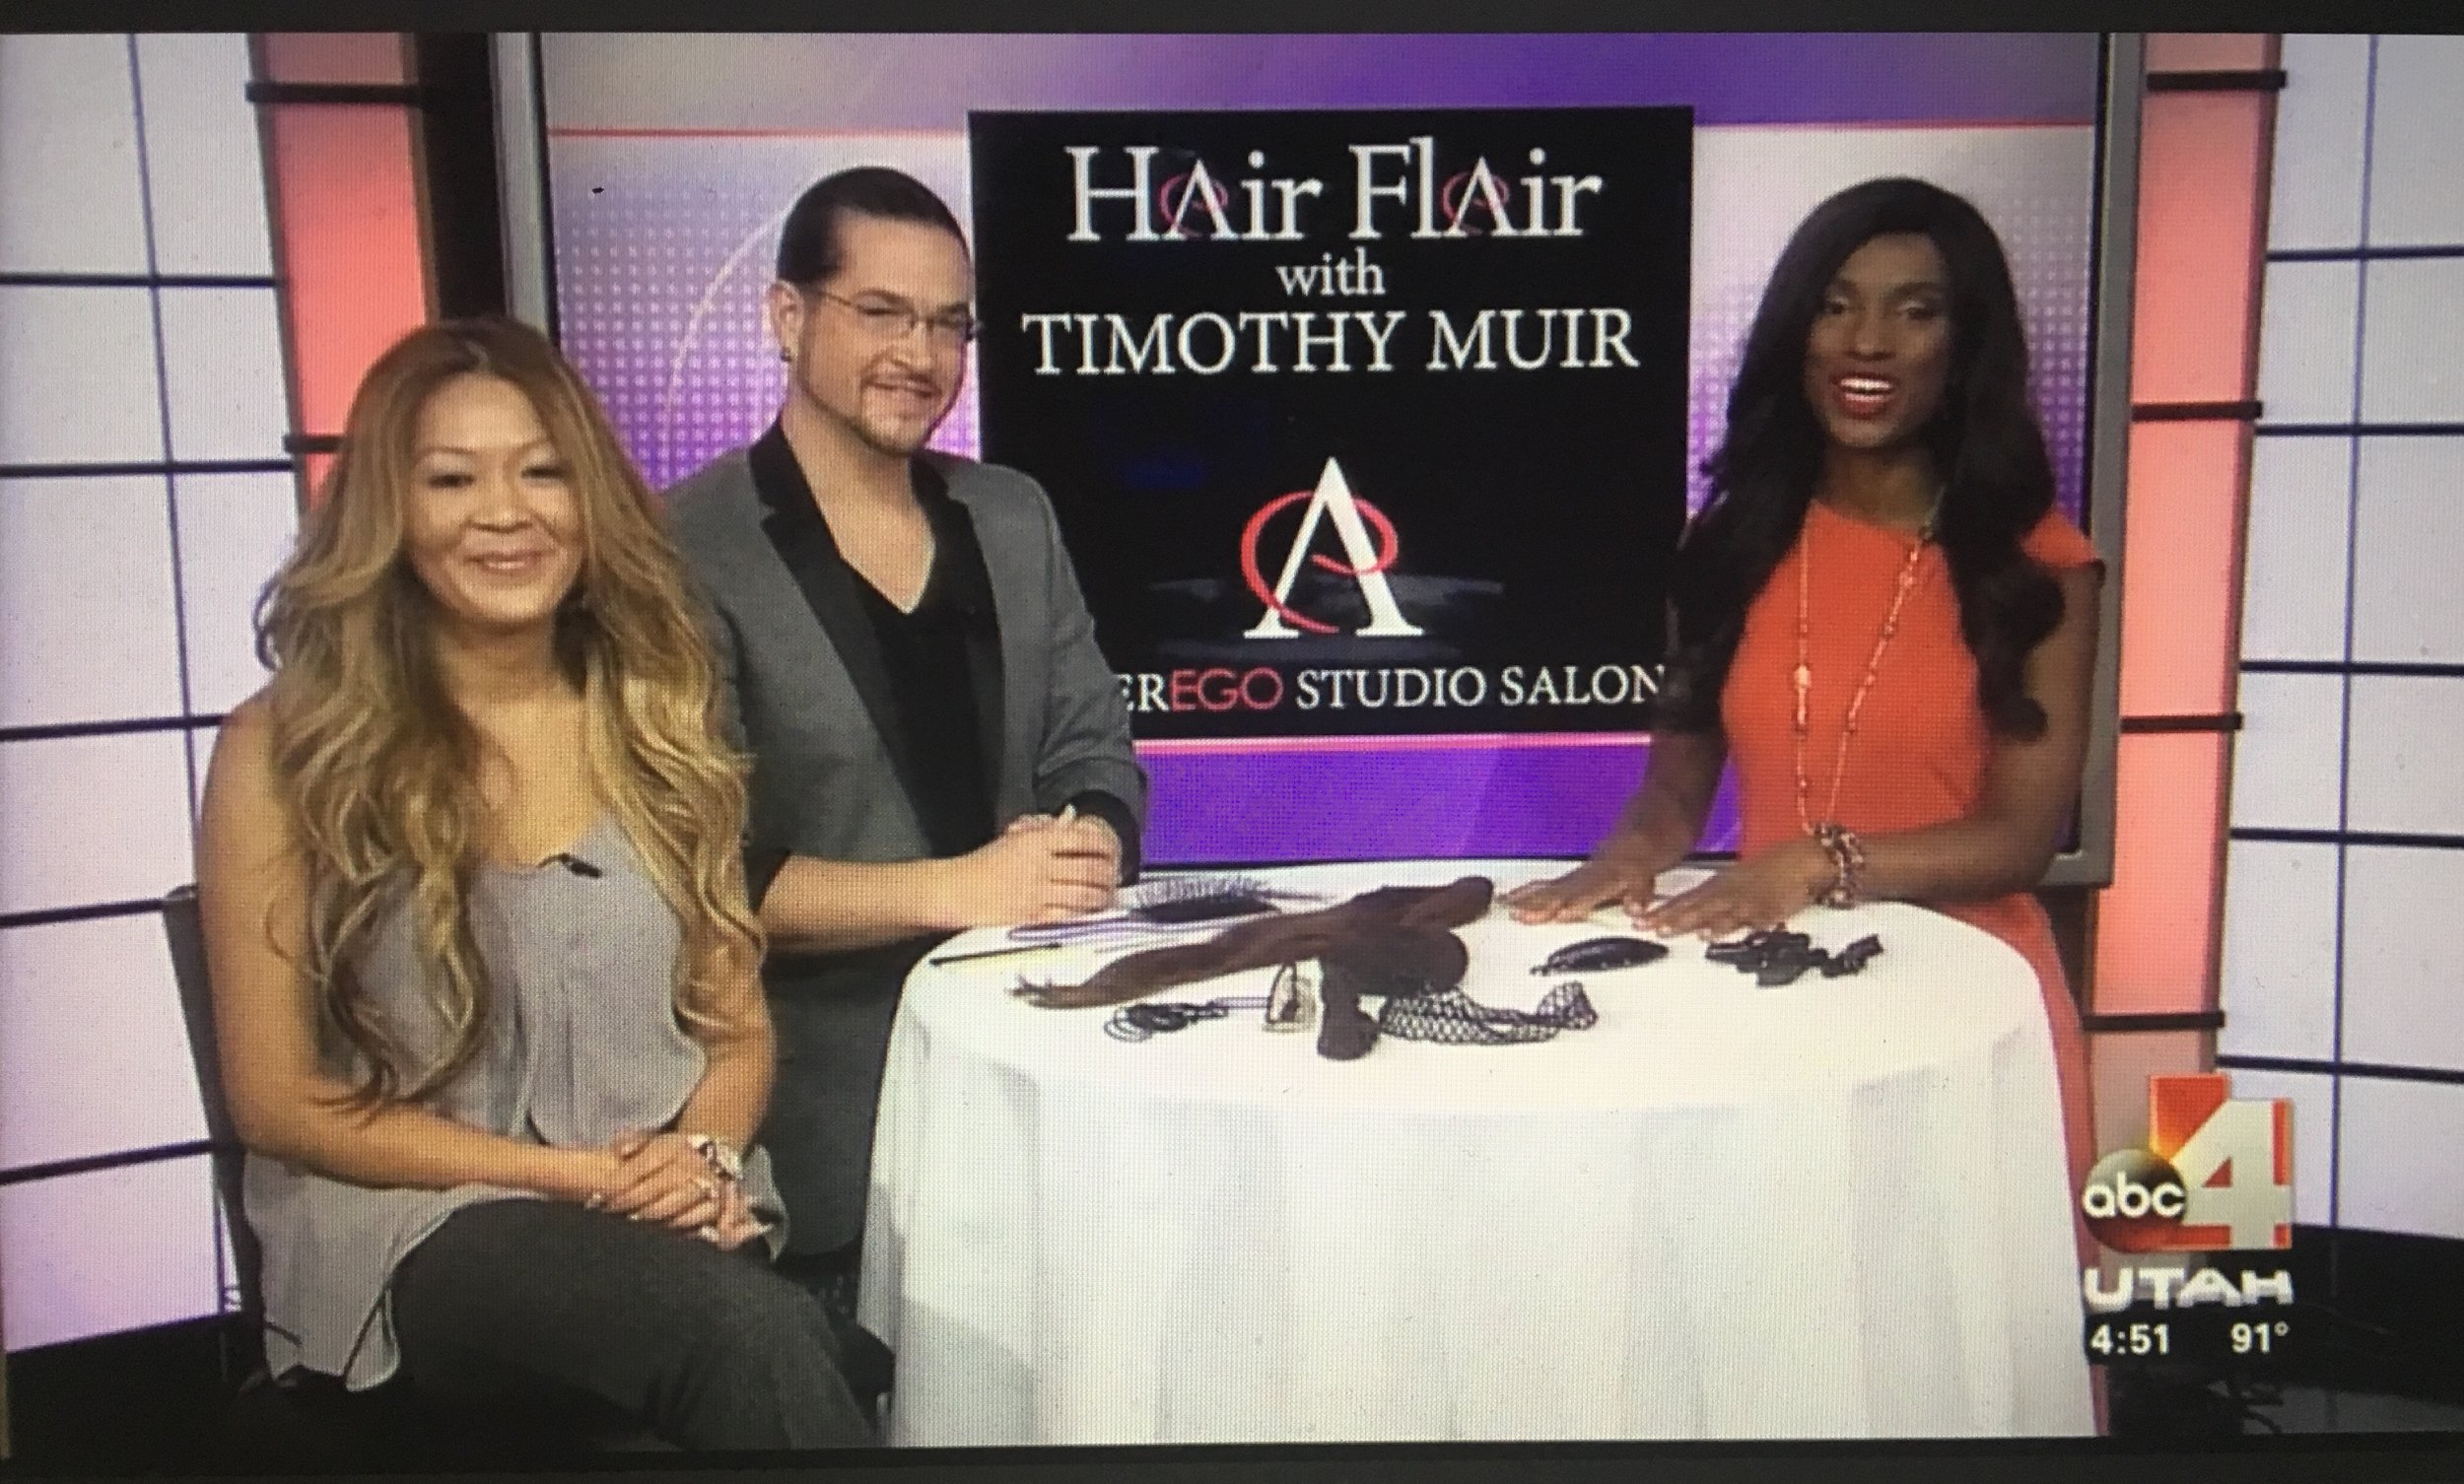 ABC 4 UTAH - 5 Best Accessories for Jazzing Up    Your Hair